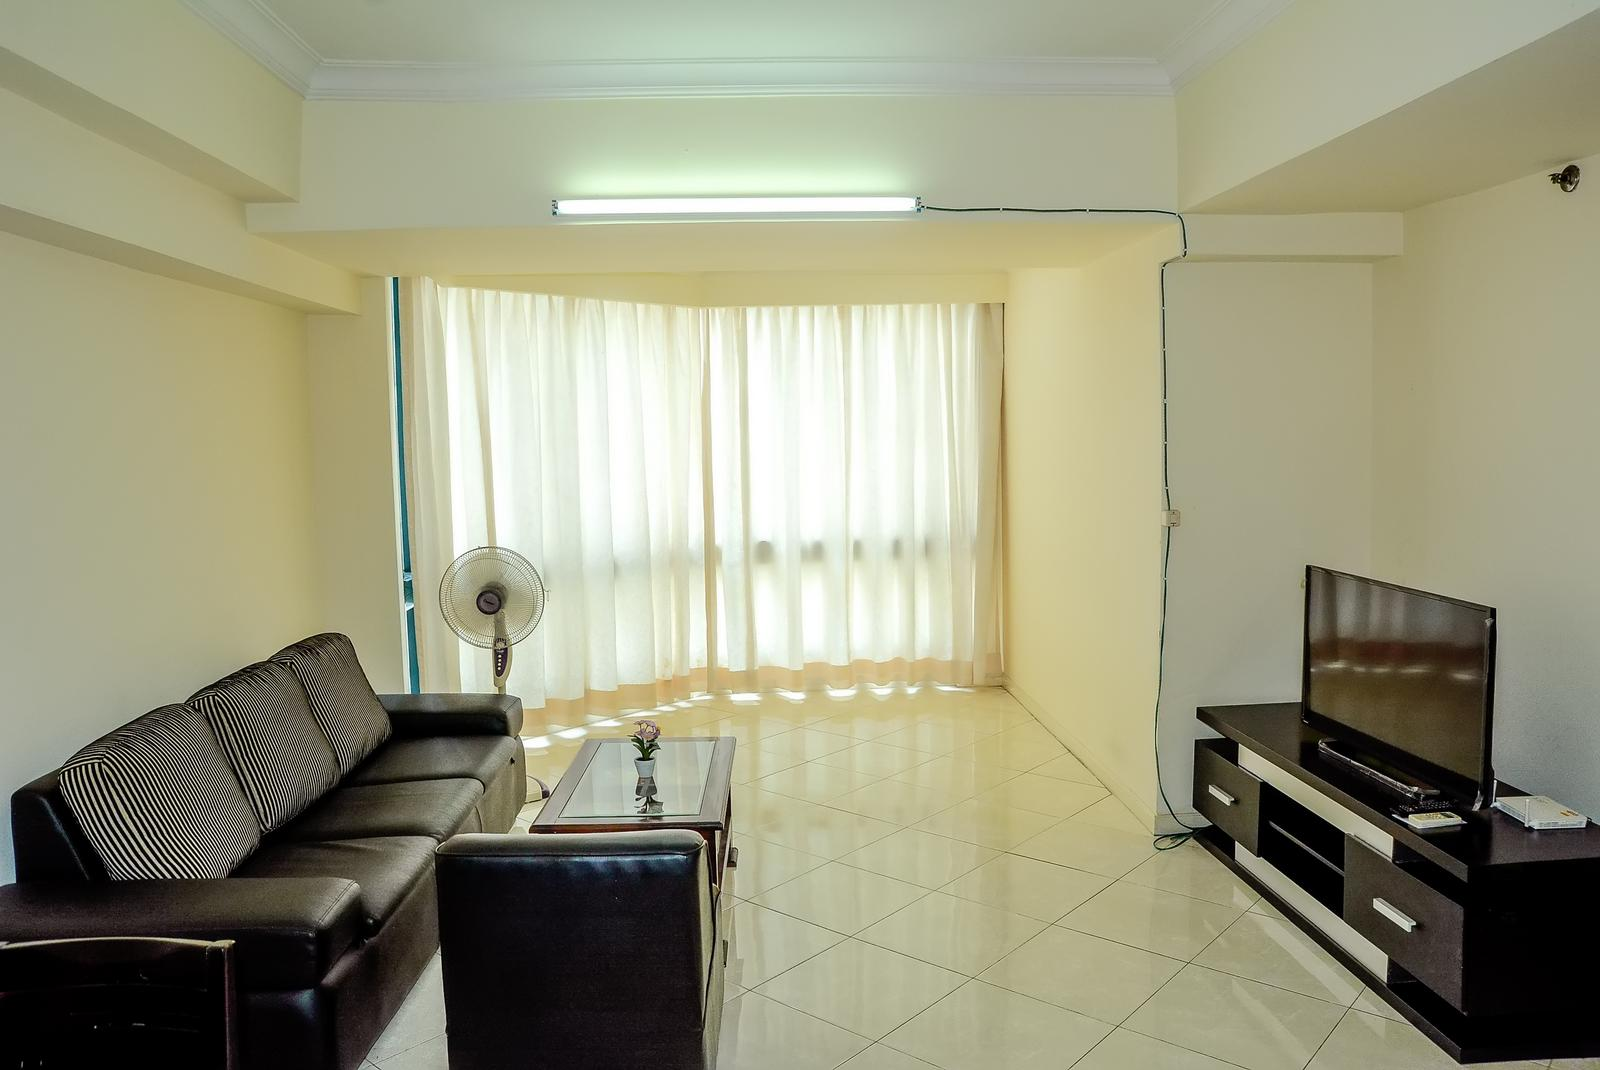 Apartemen Taman Anggrek - Best Location 2BR Taman Anggrek Apartment By Travelio